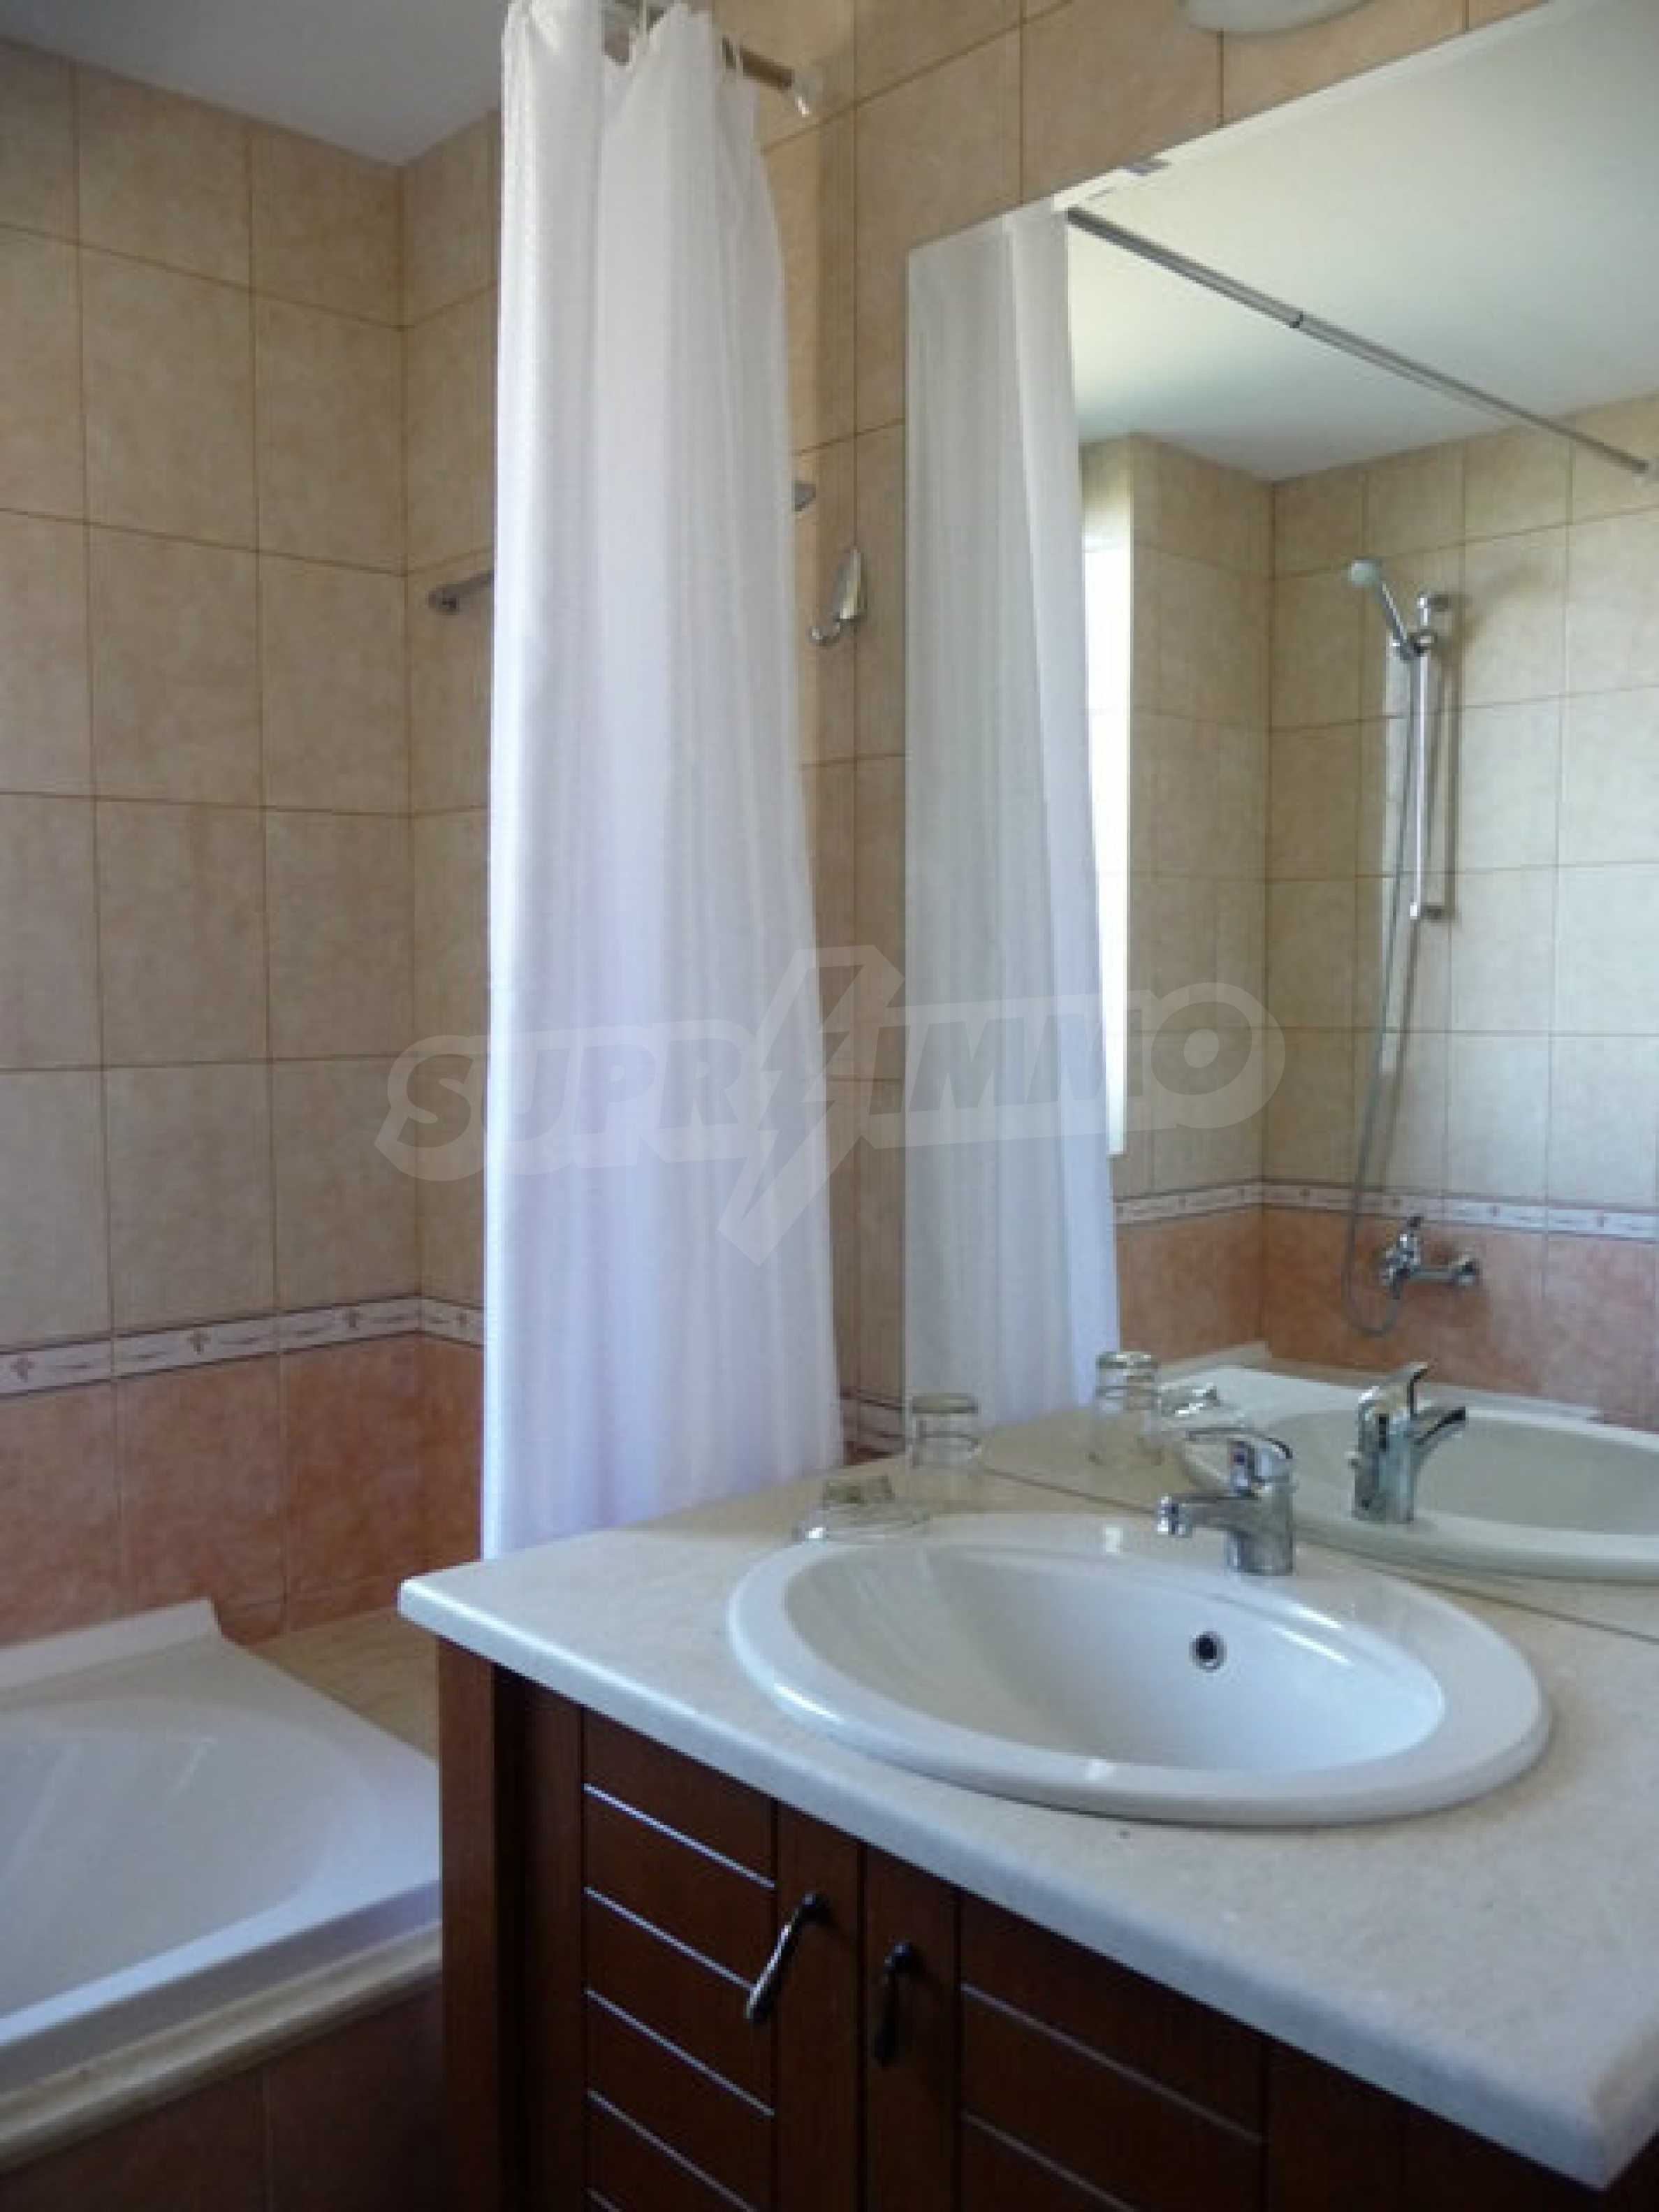 Large 2-bedroom apartment in Kaliakria complex 19